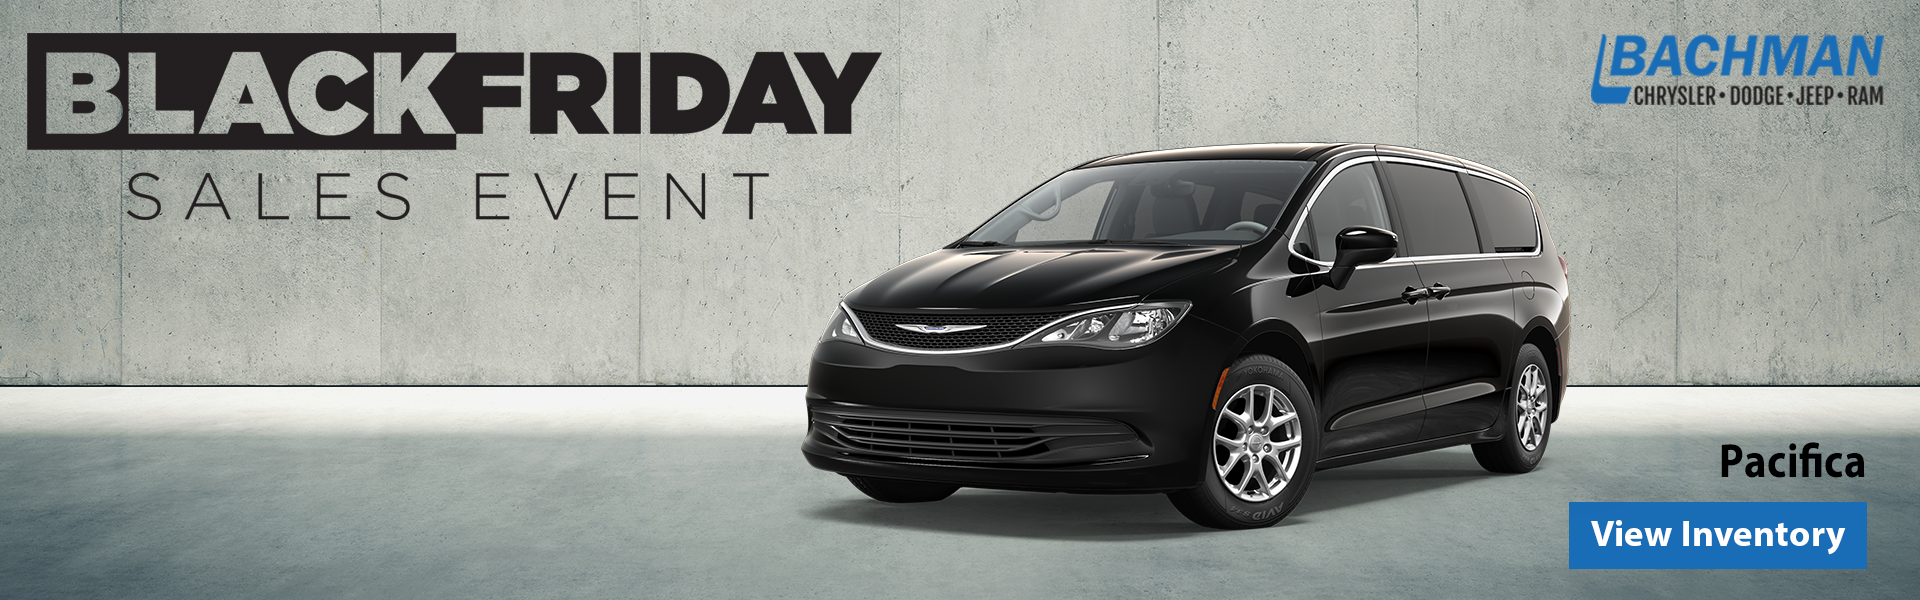 Black Friday Sales Event Pacifica